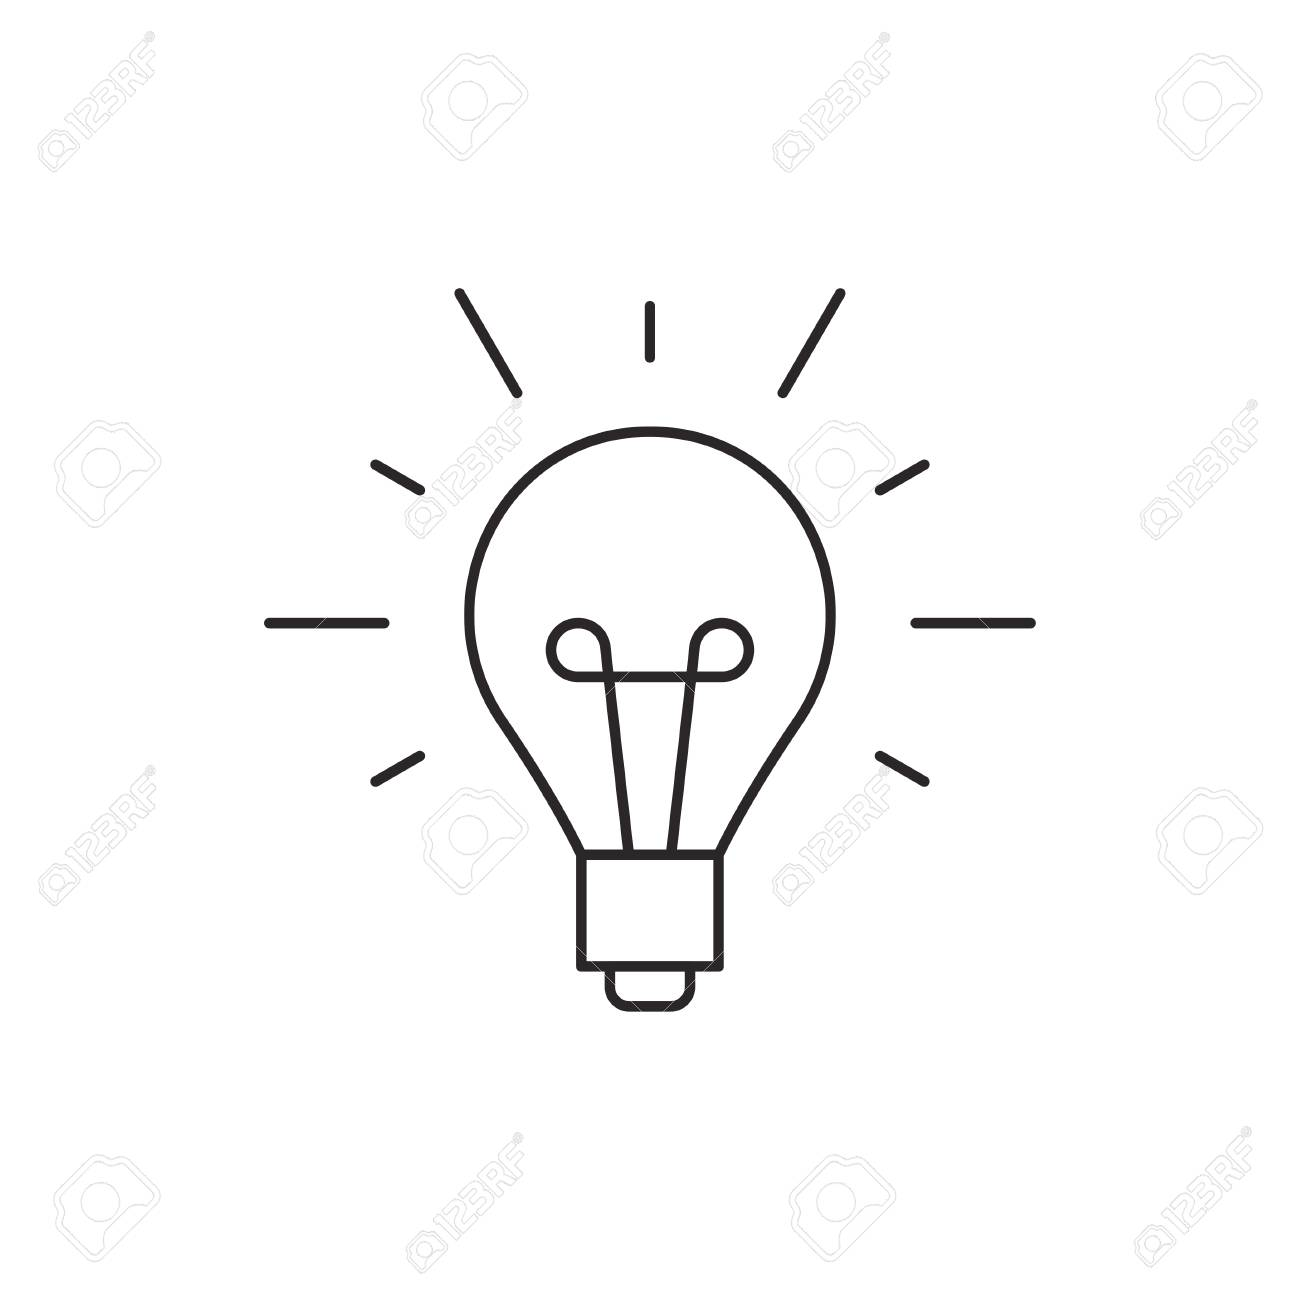 Idea icon outline lamp illustration vector isolated on white background - 62124825